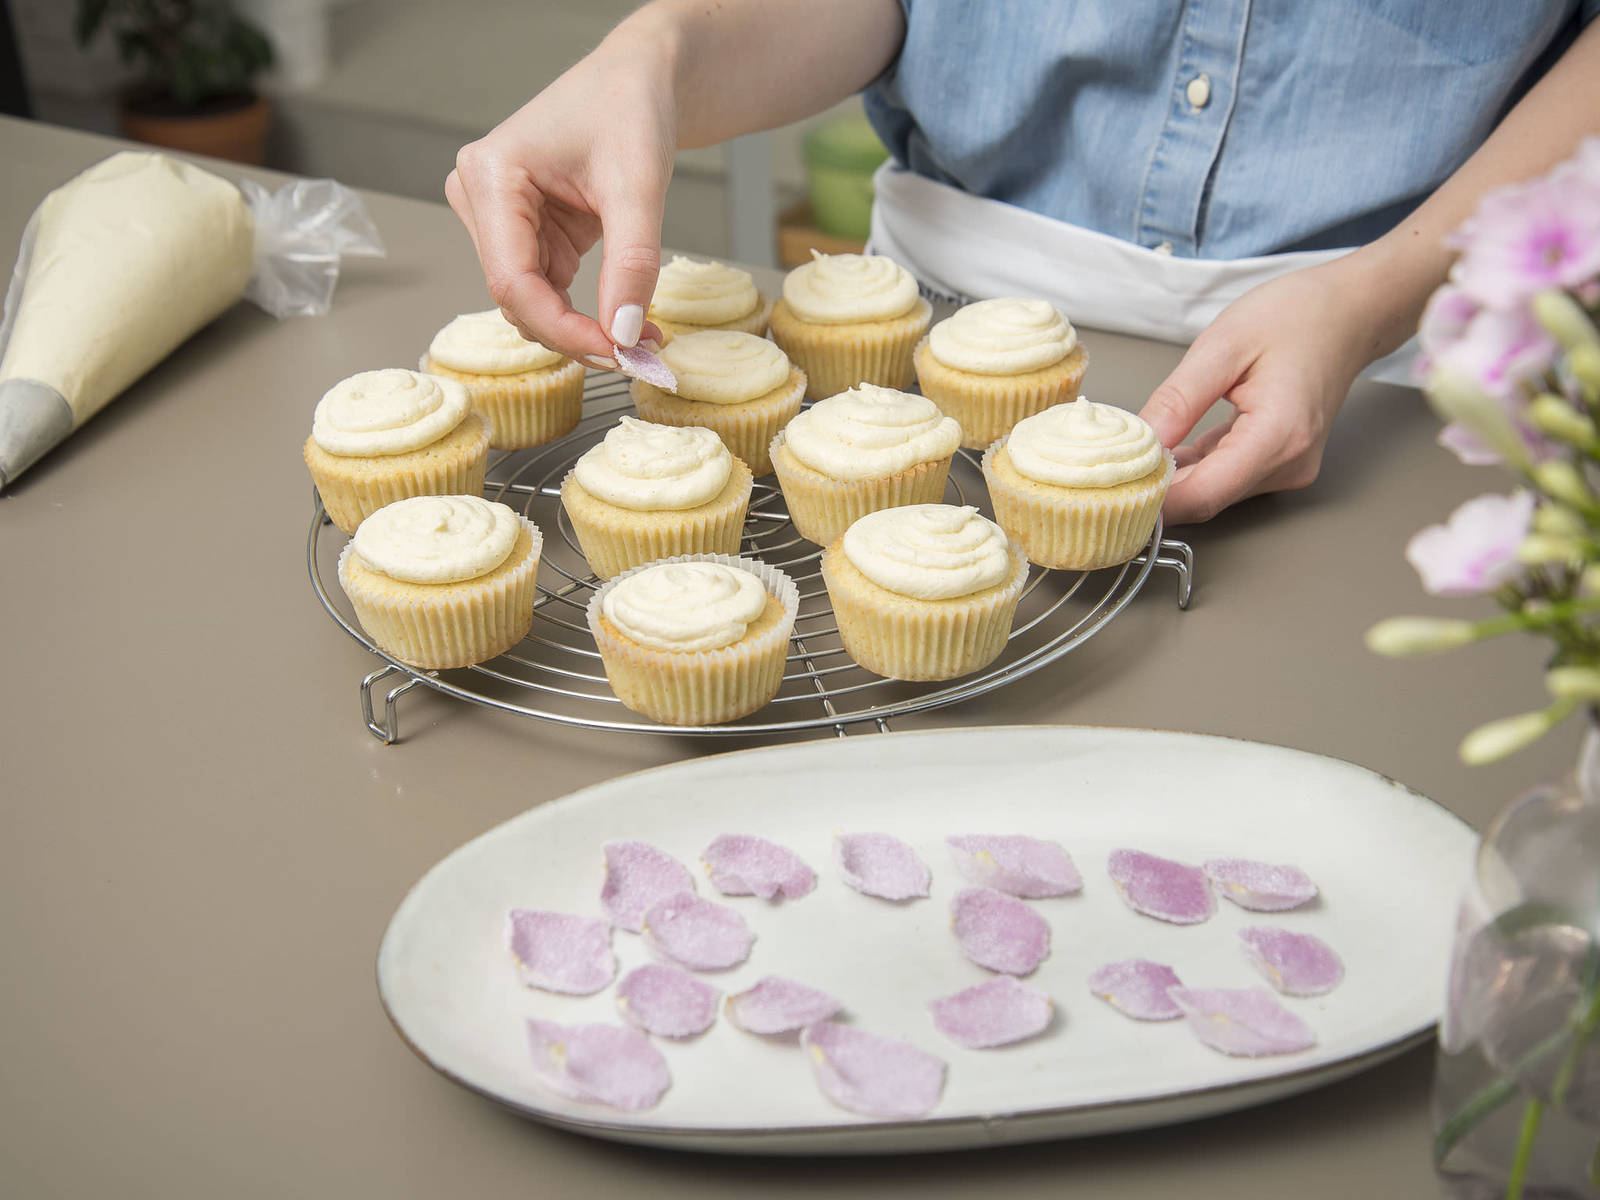 Frost the cupcakes by working your way from inside out, drawing upwards in circles. Decorate each cupcake with a sugarcoated rose petal. Enjoy!